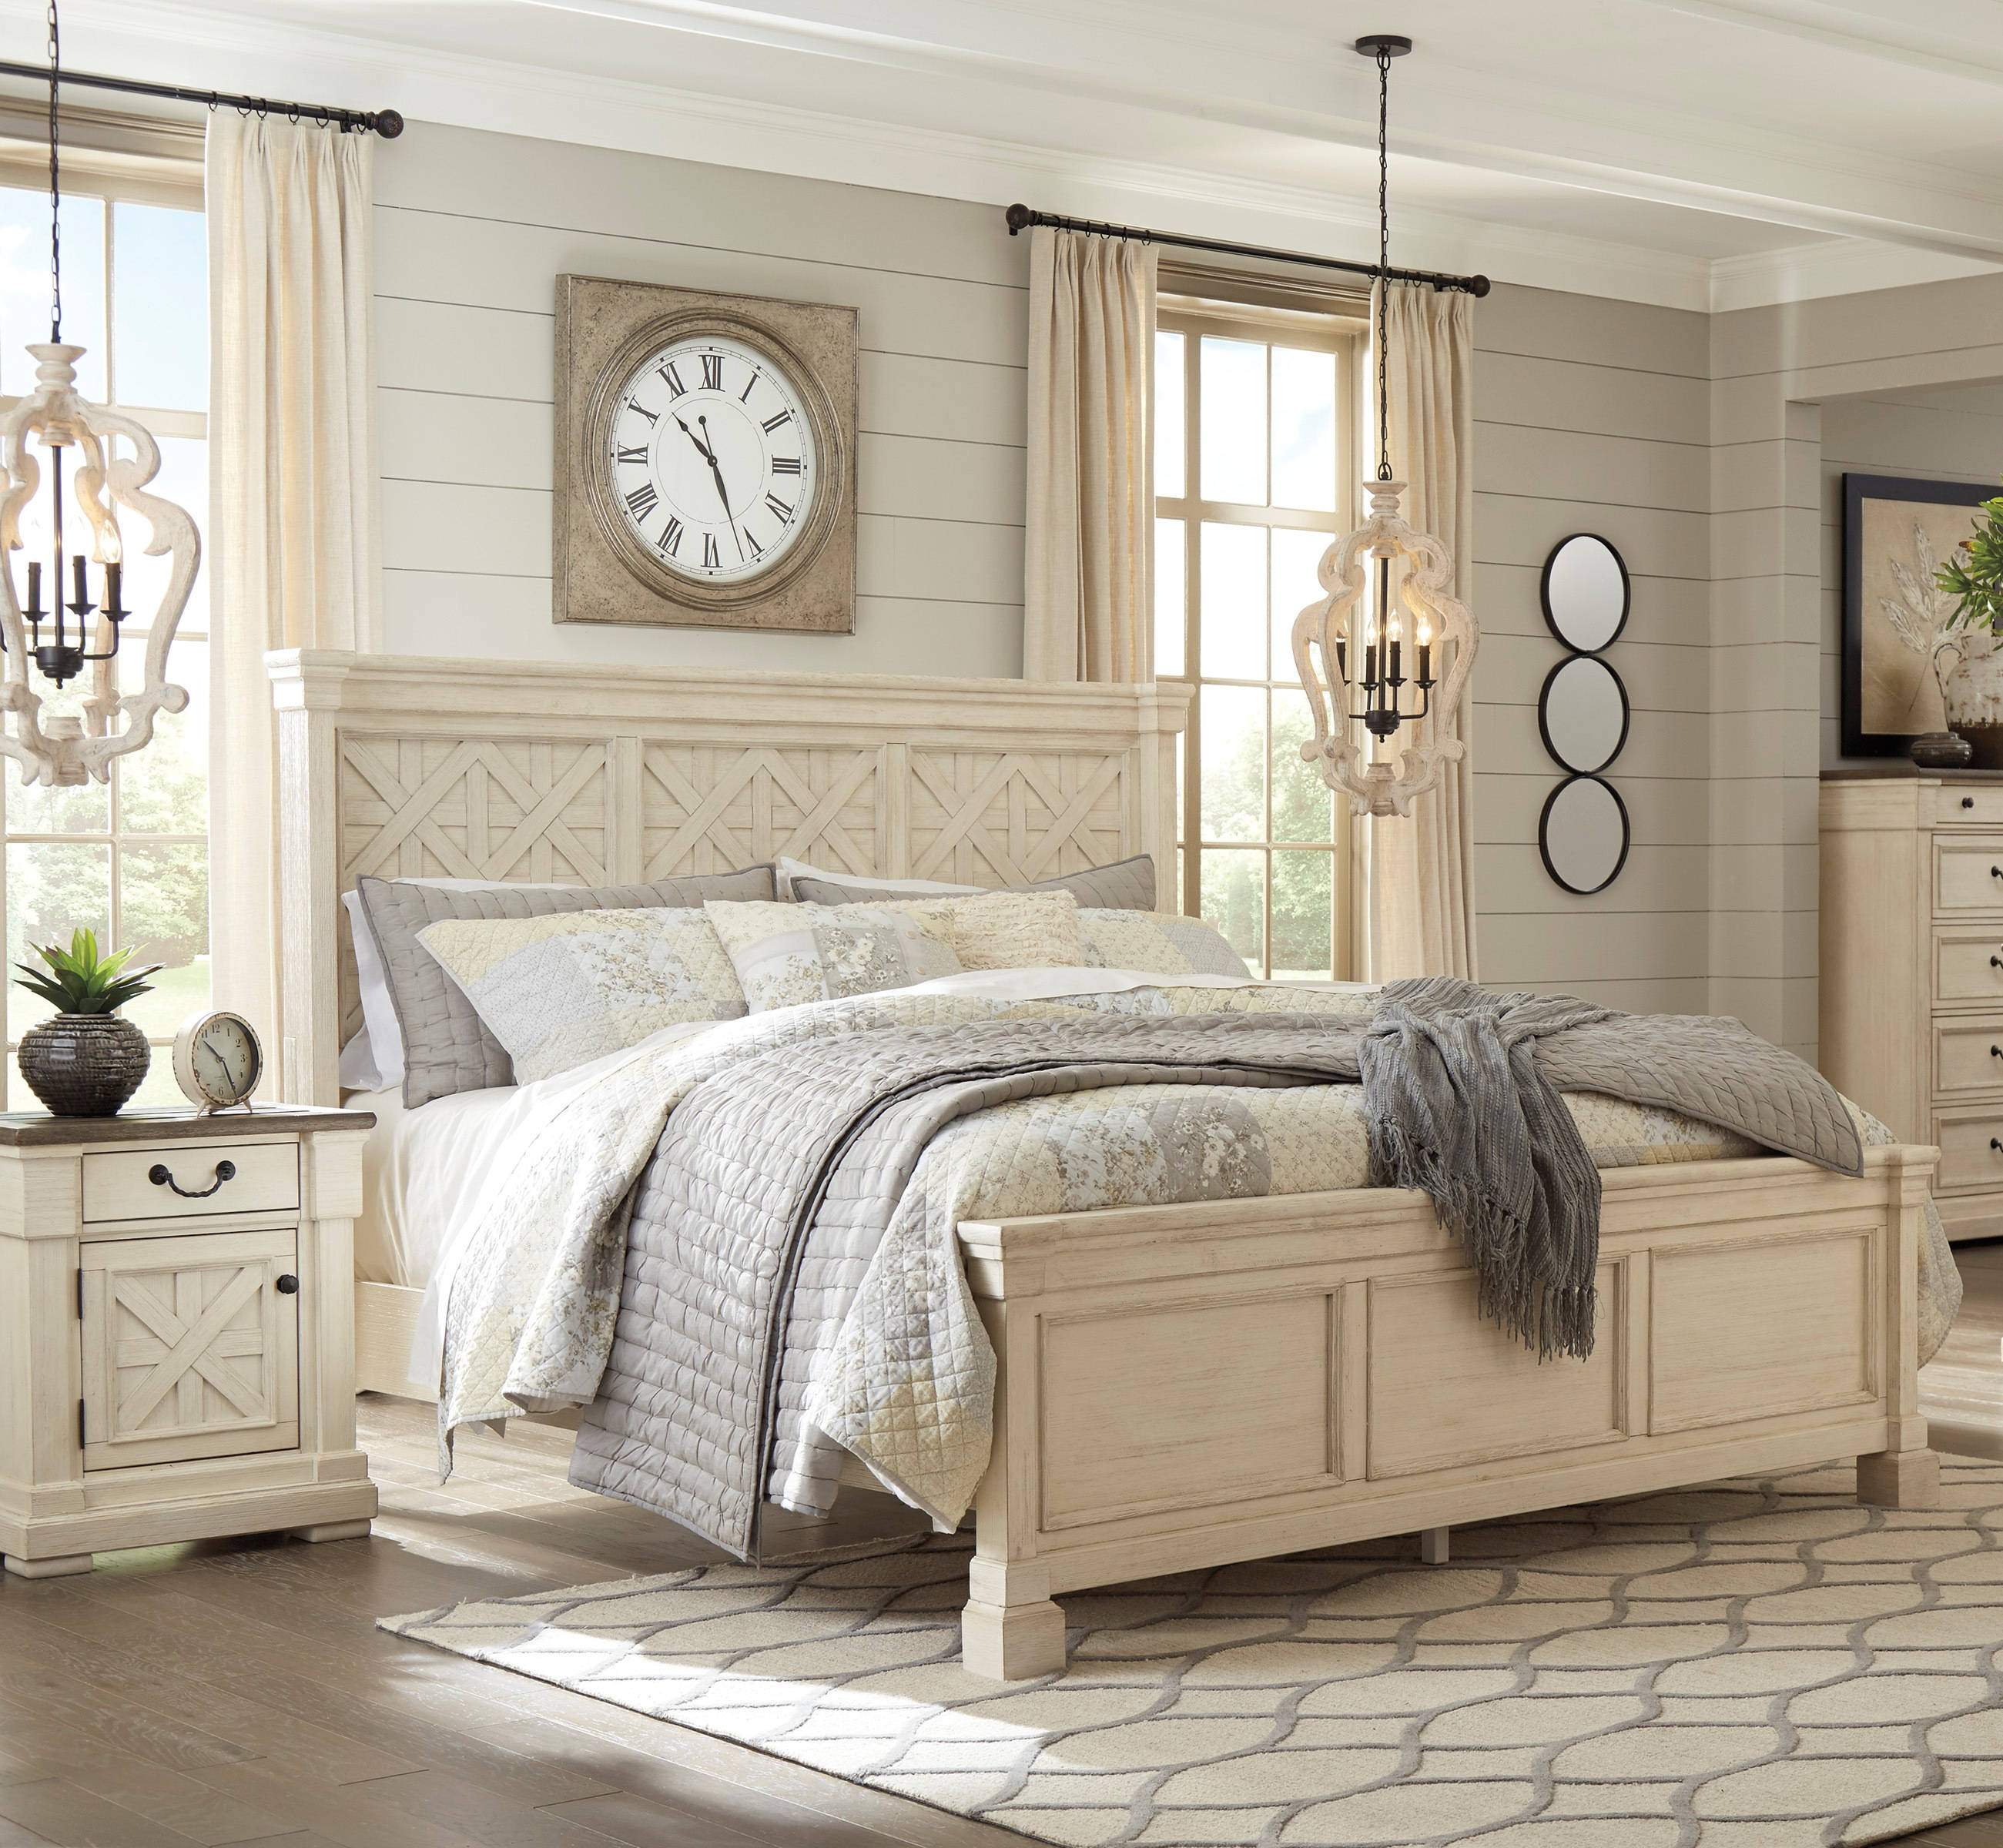 Ashley Furniture Bolanburg White 2pc Bedroom Set With